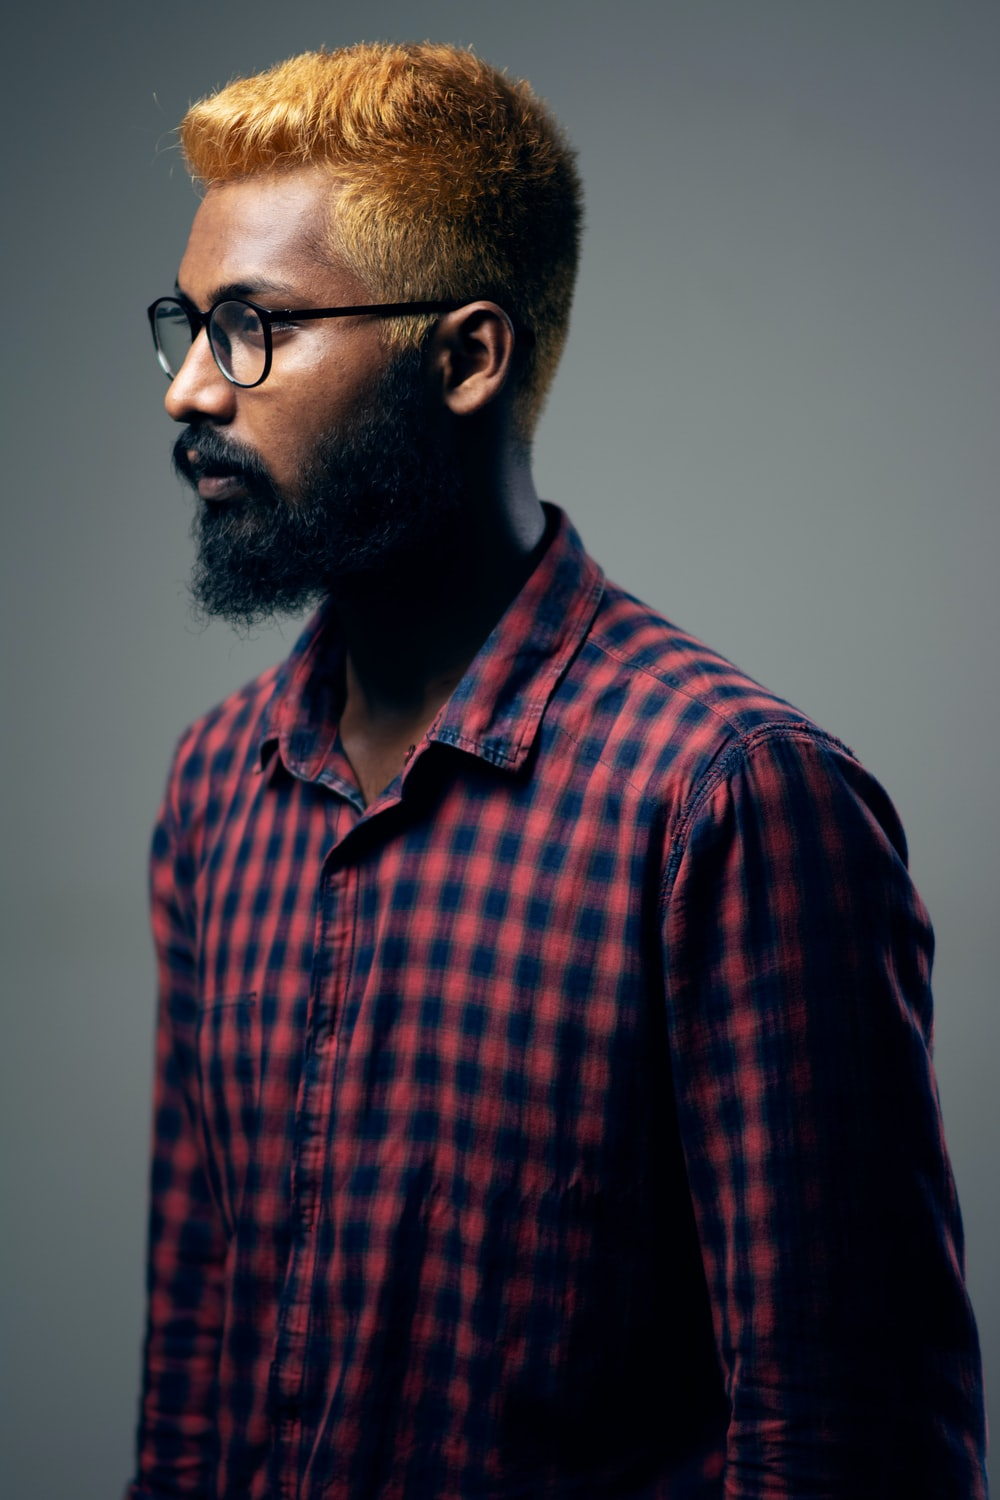 man in red and black plaid button up shirt wearing black framed eyeglasses